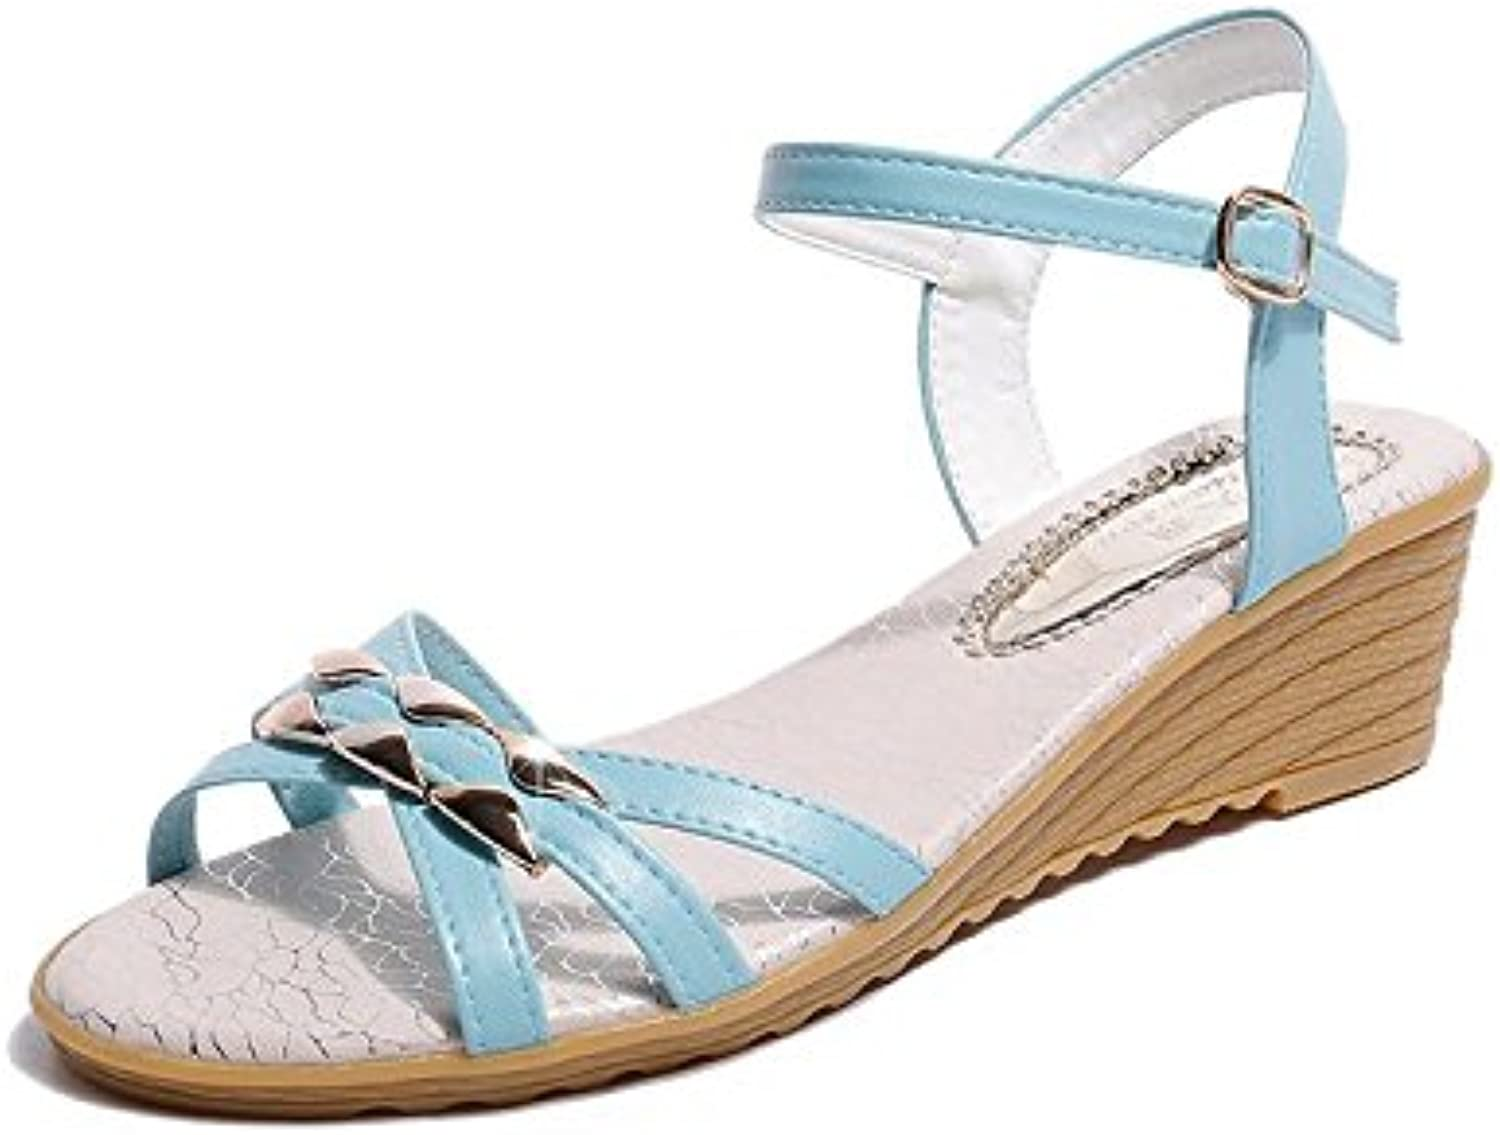 Summer Ladies' Sandals, Sandals, Slit, Low Toe and Low Casual Women's shoes.